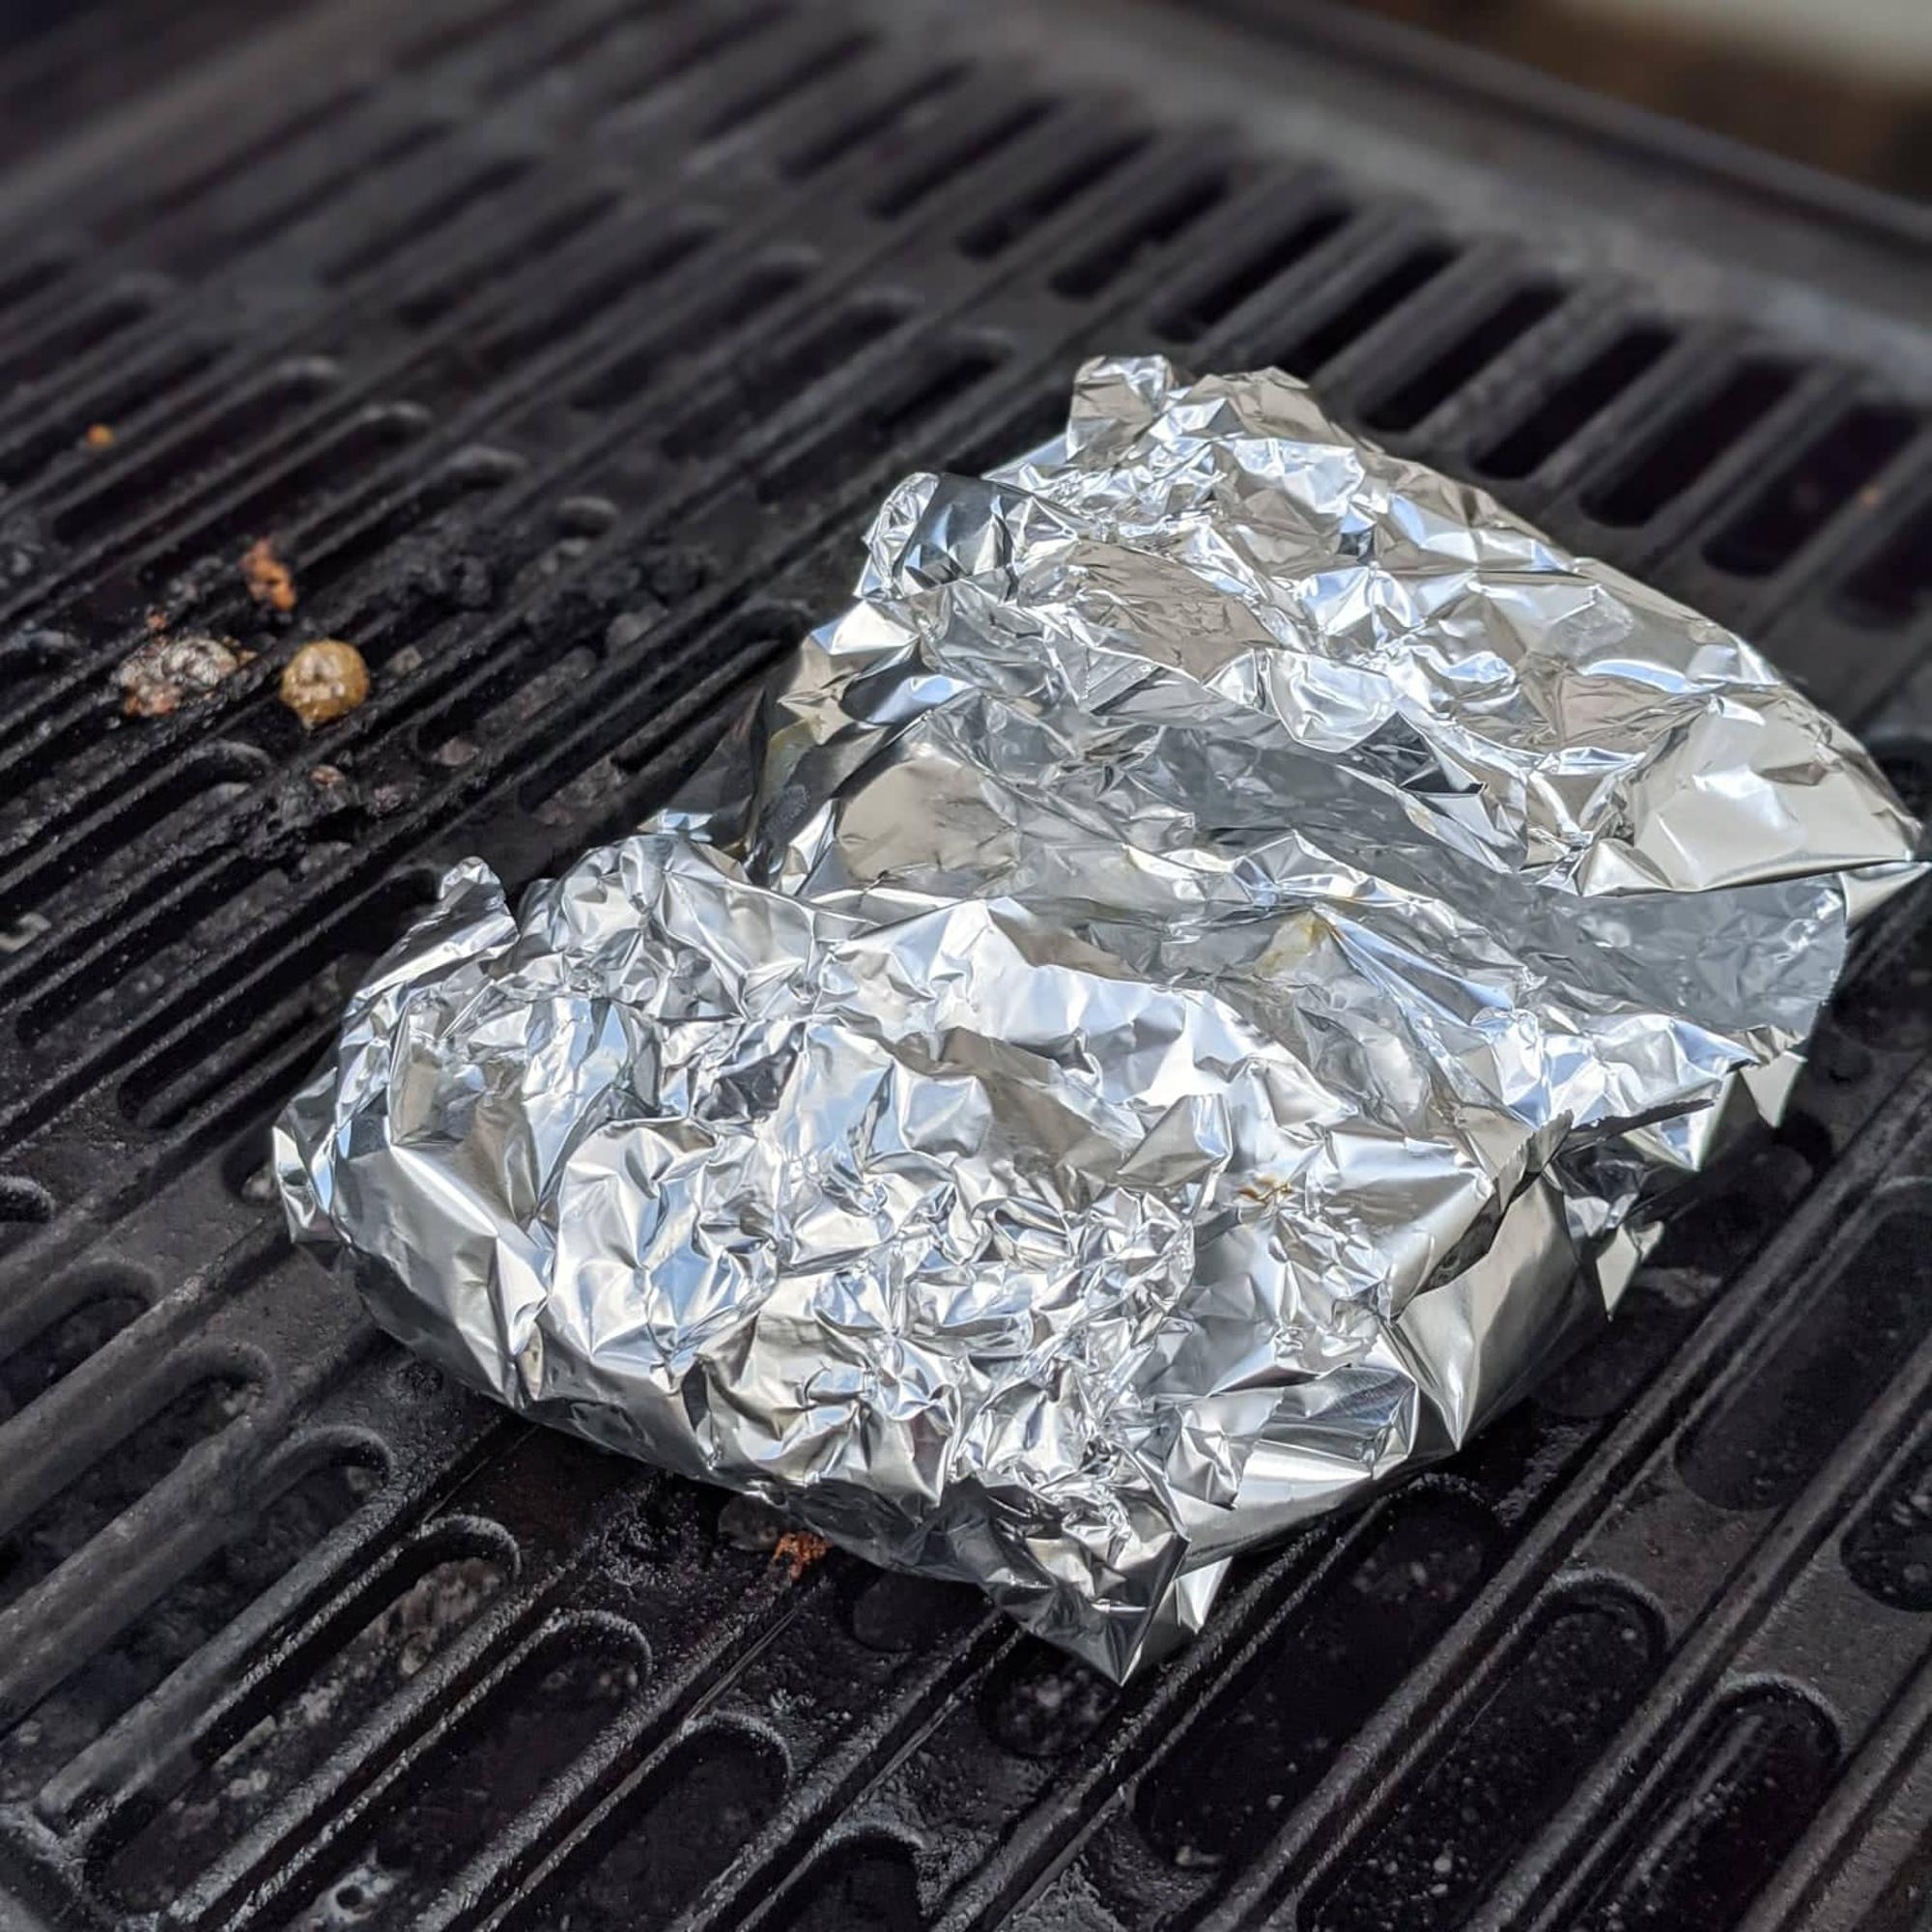 Burger wrapped in foil.